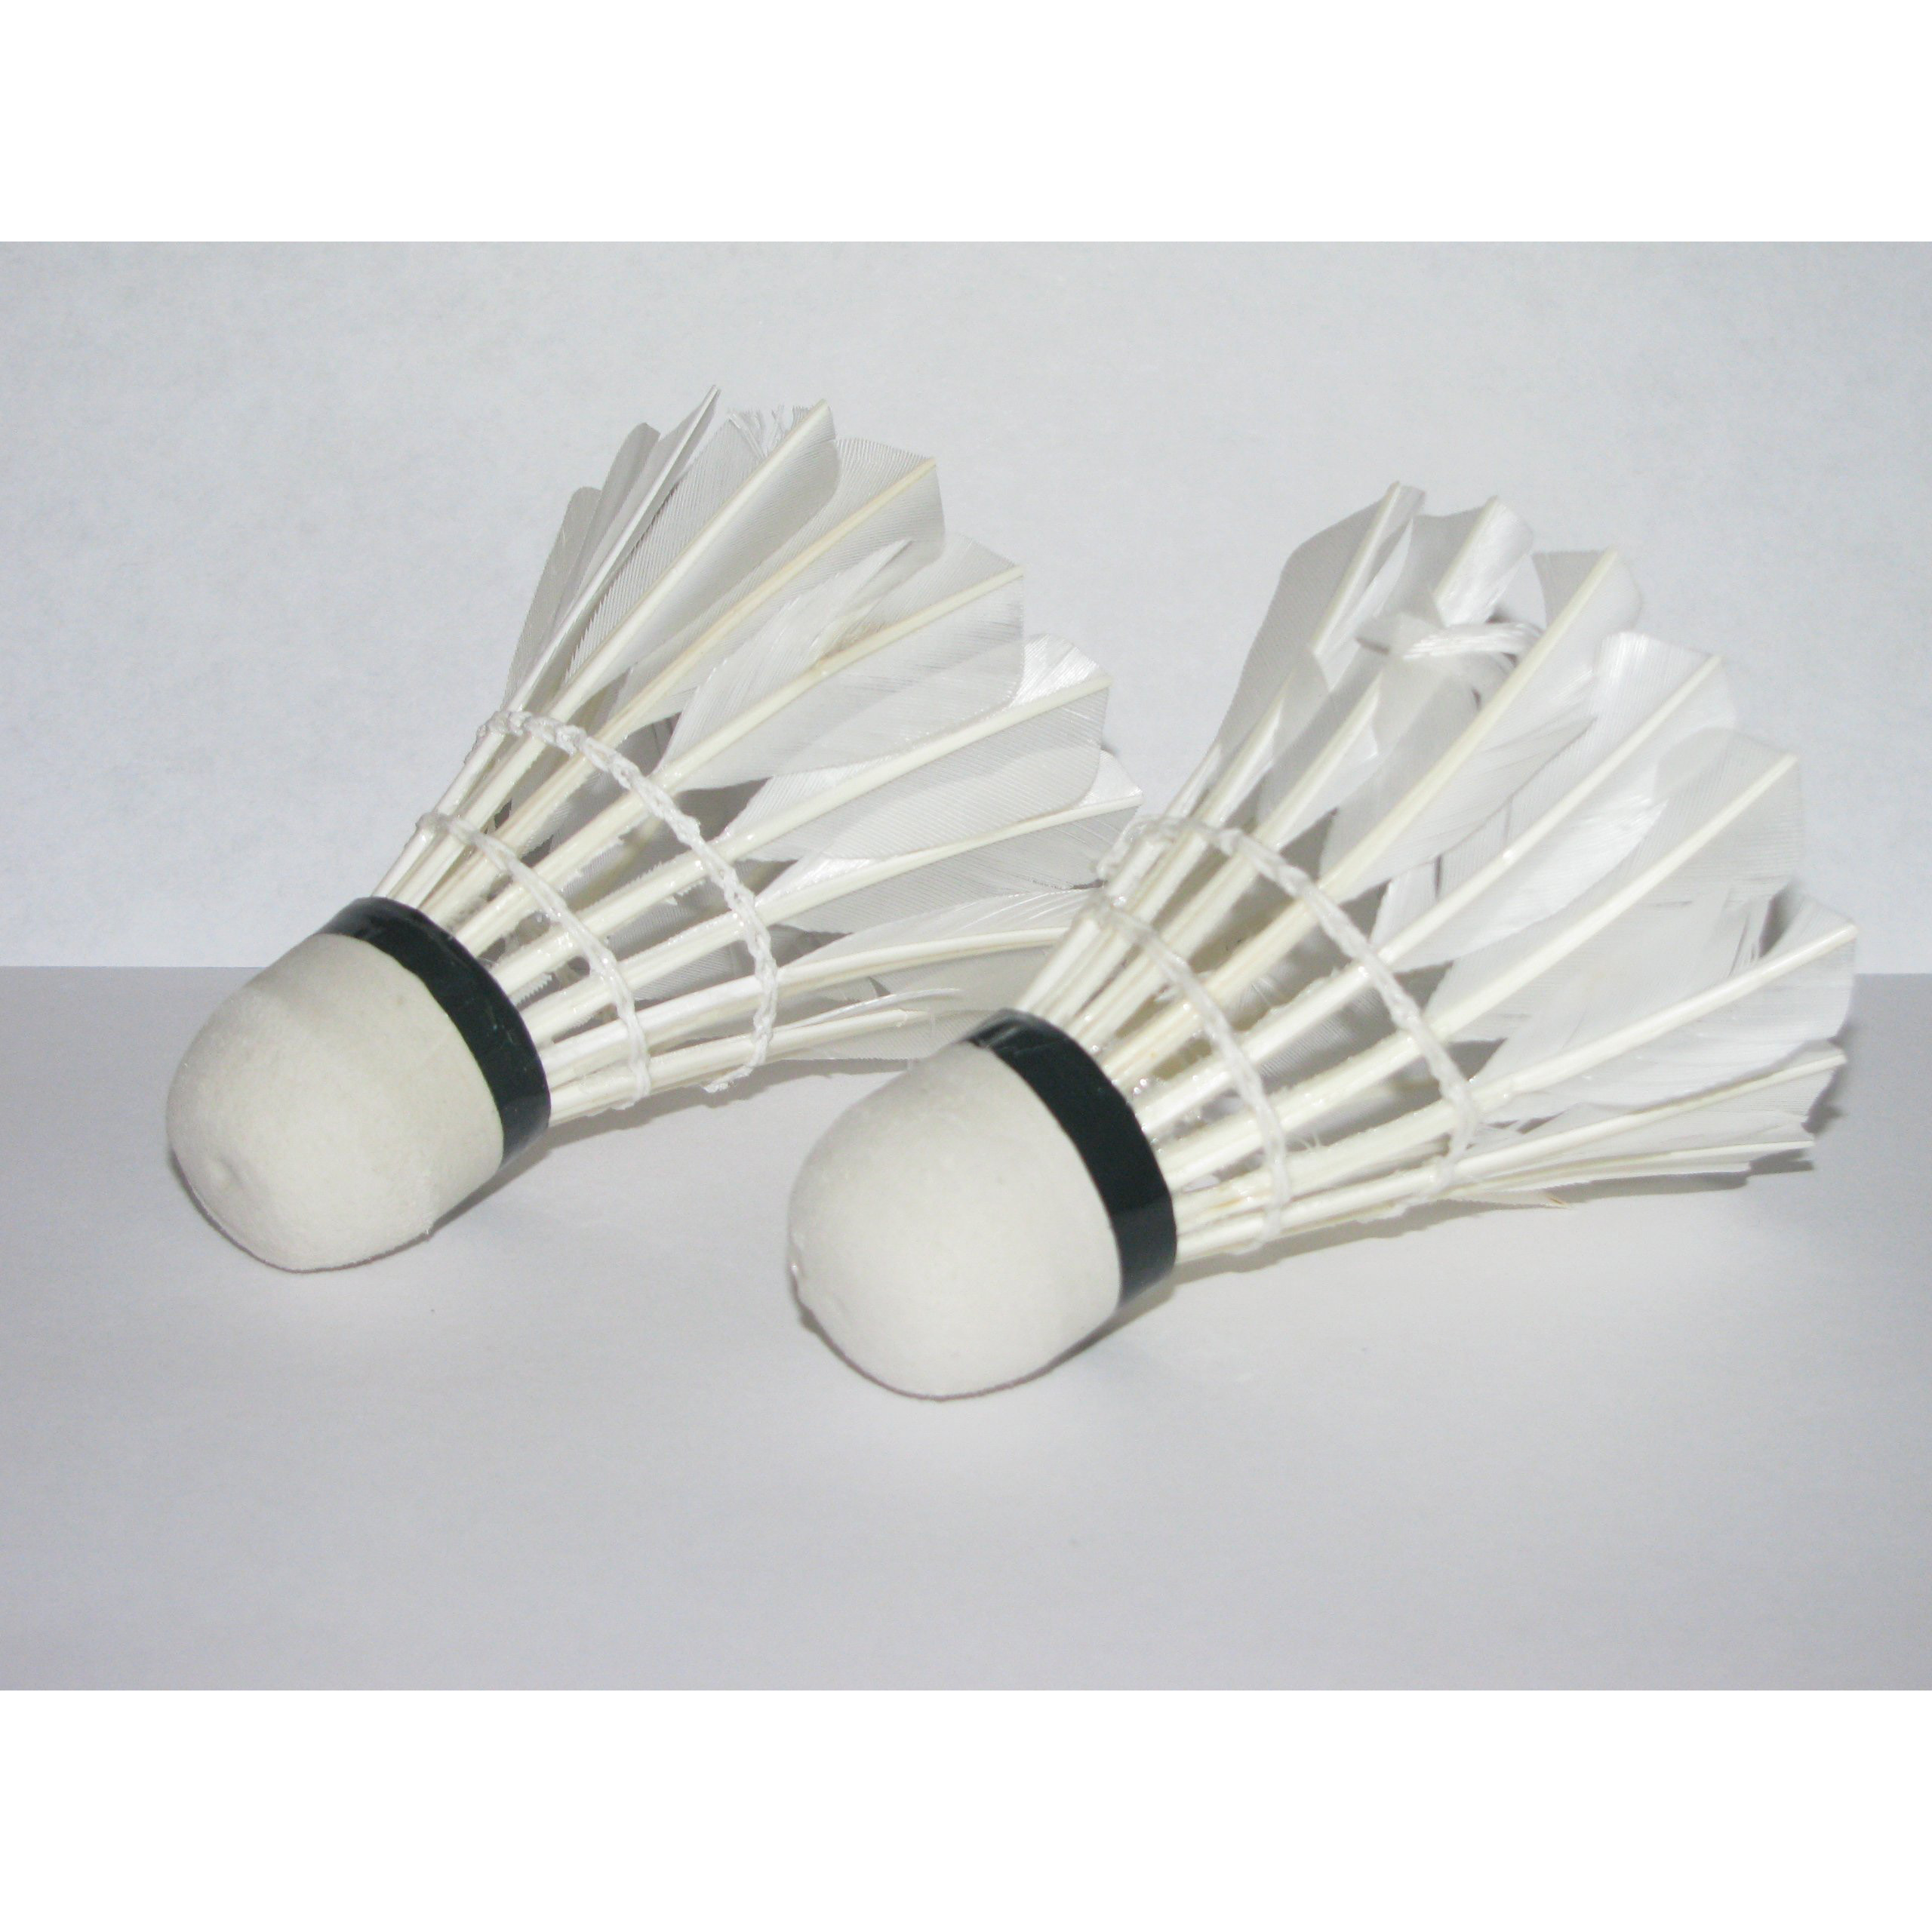 LED Light-Up Badminton Birdies (Set of 2) Shuttlecocks Shuttlecock Feather